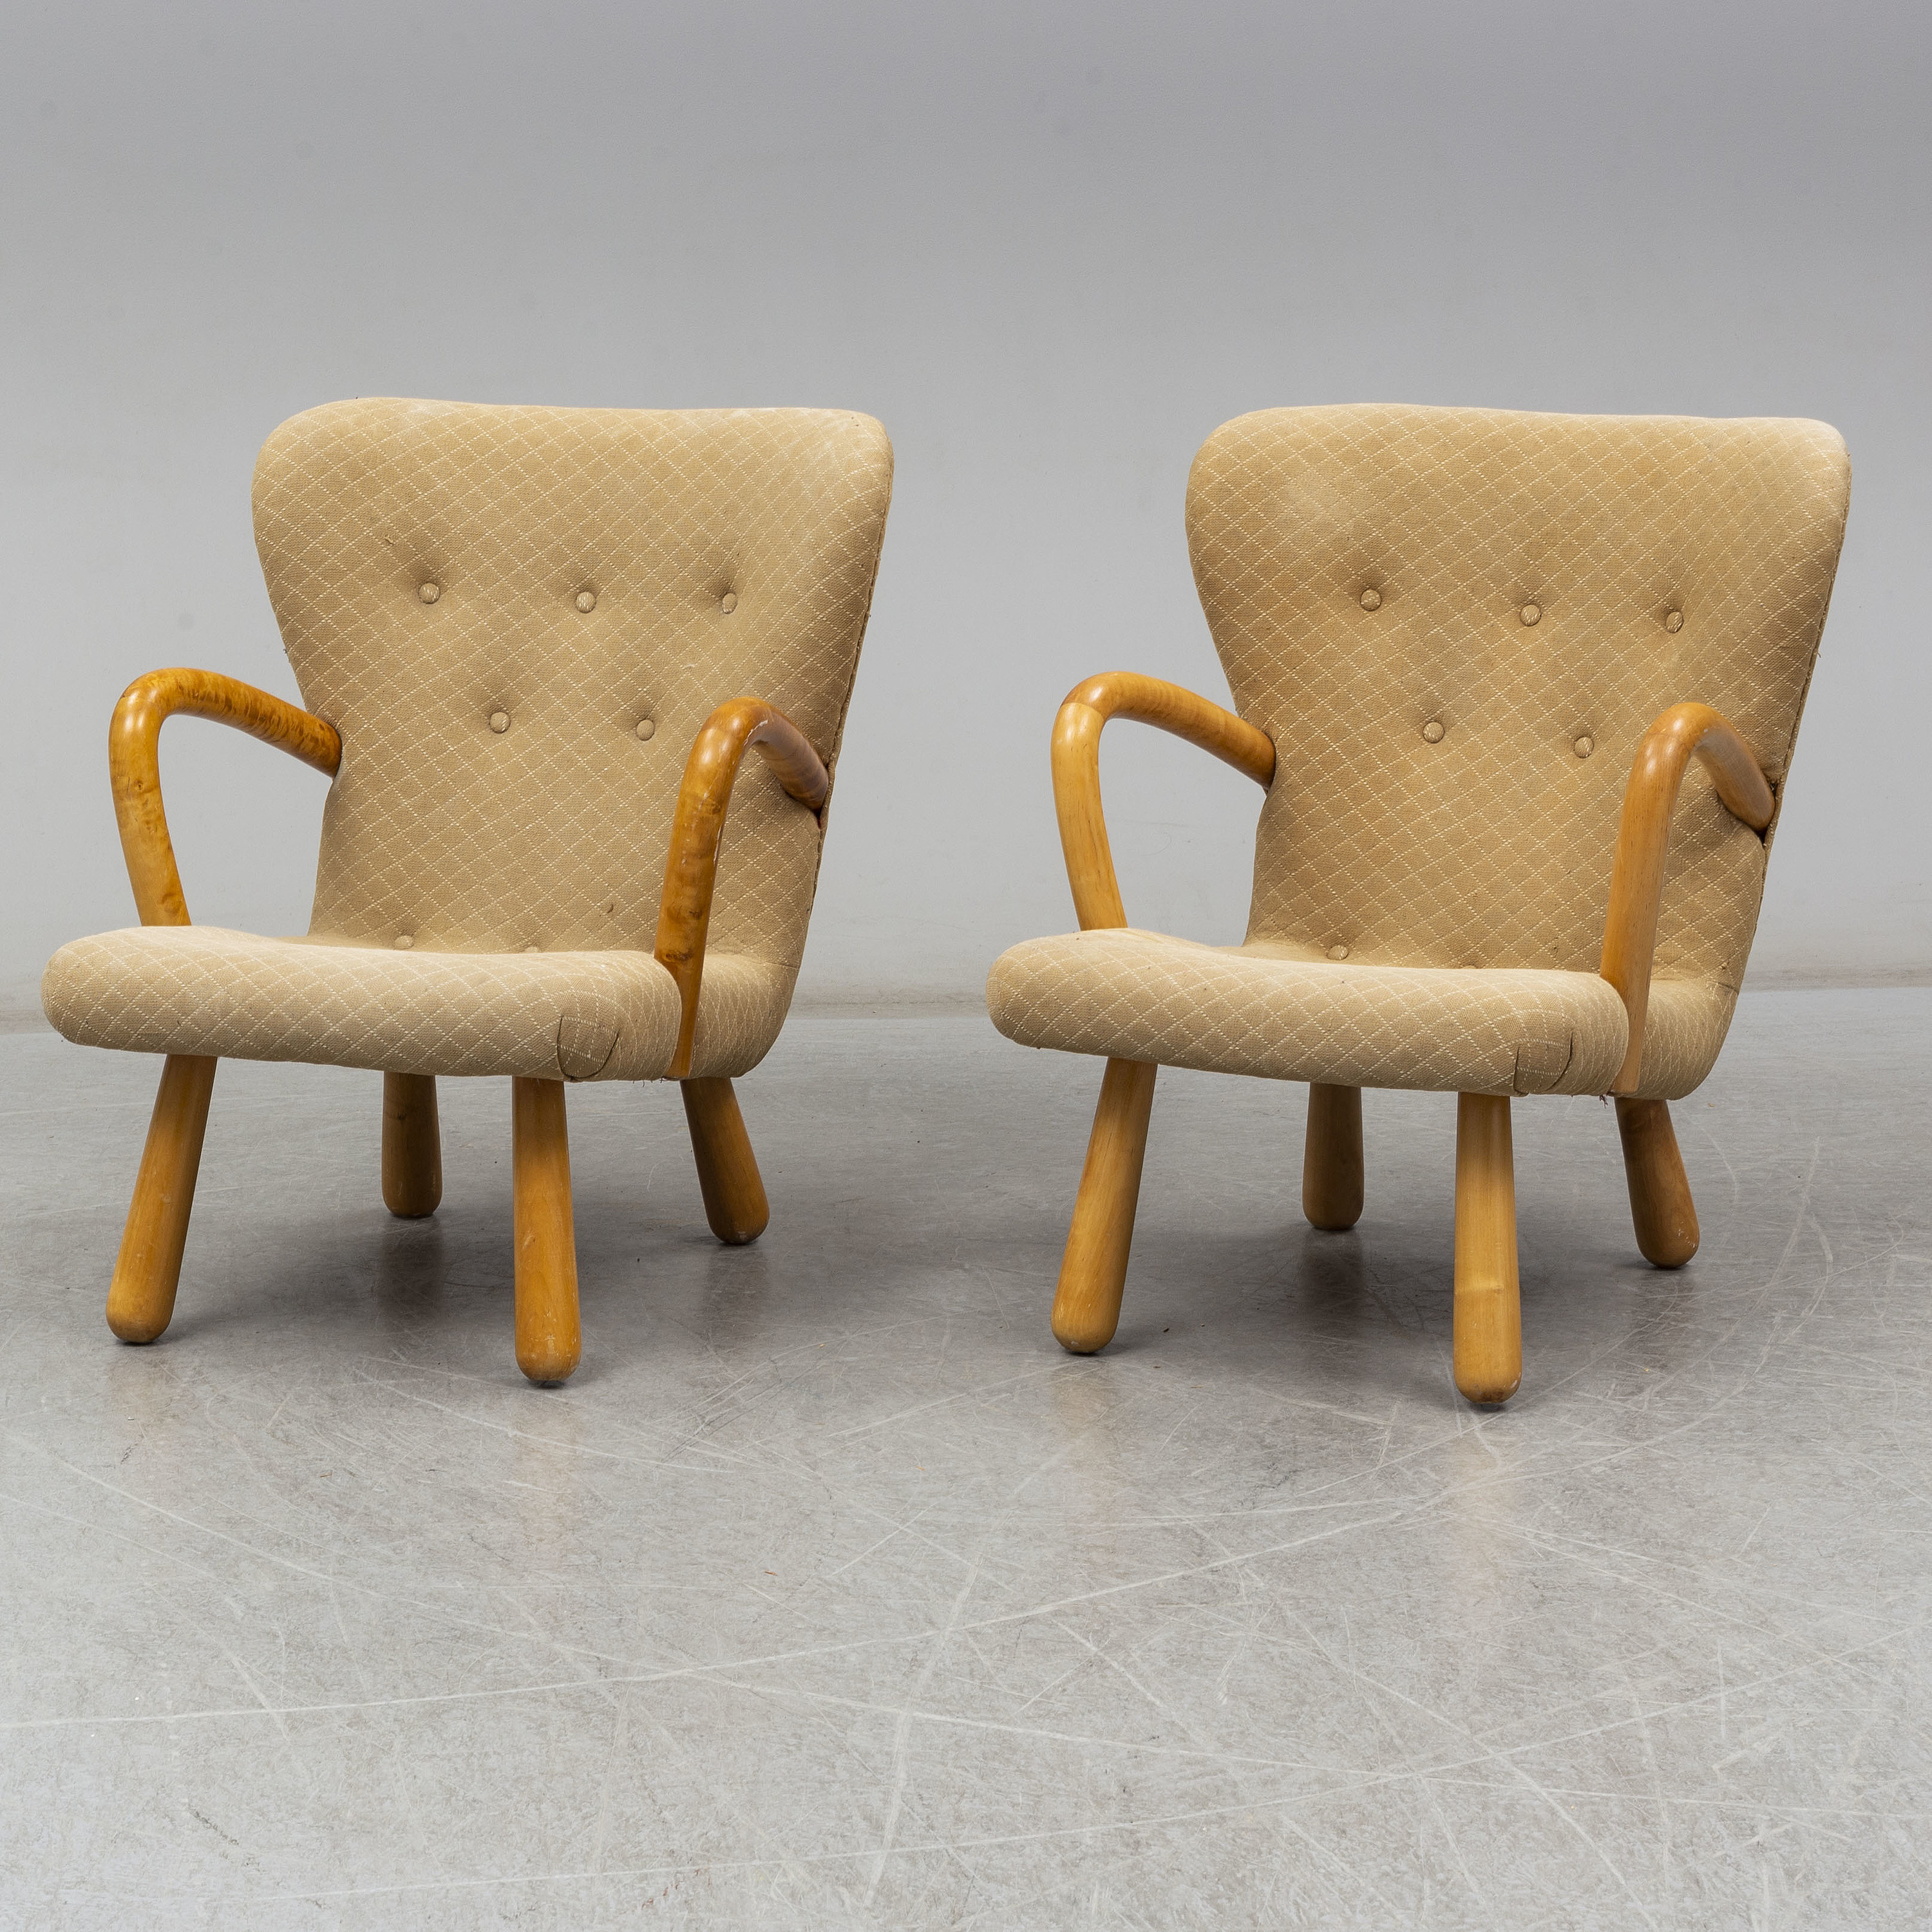 Awesome A Pair Of Ikea 1950S Ake Easy Chairs Bukowskis Download Free Architecture Designs Scobabritishbridgeorg